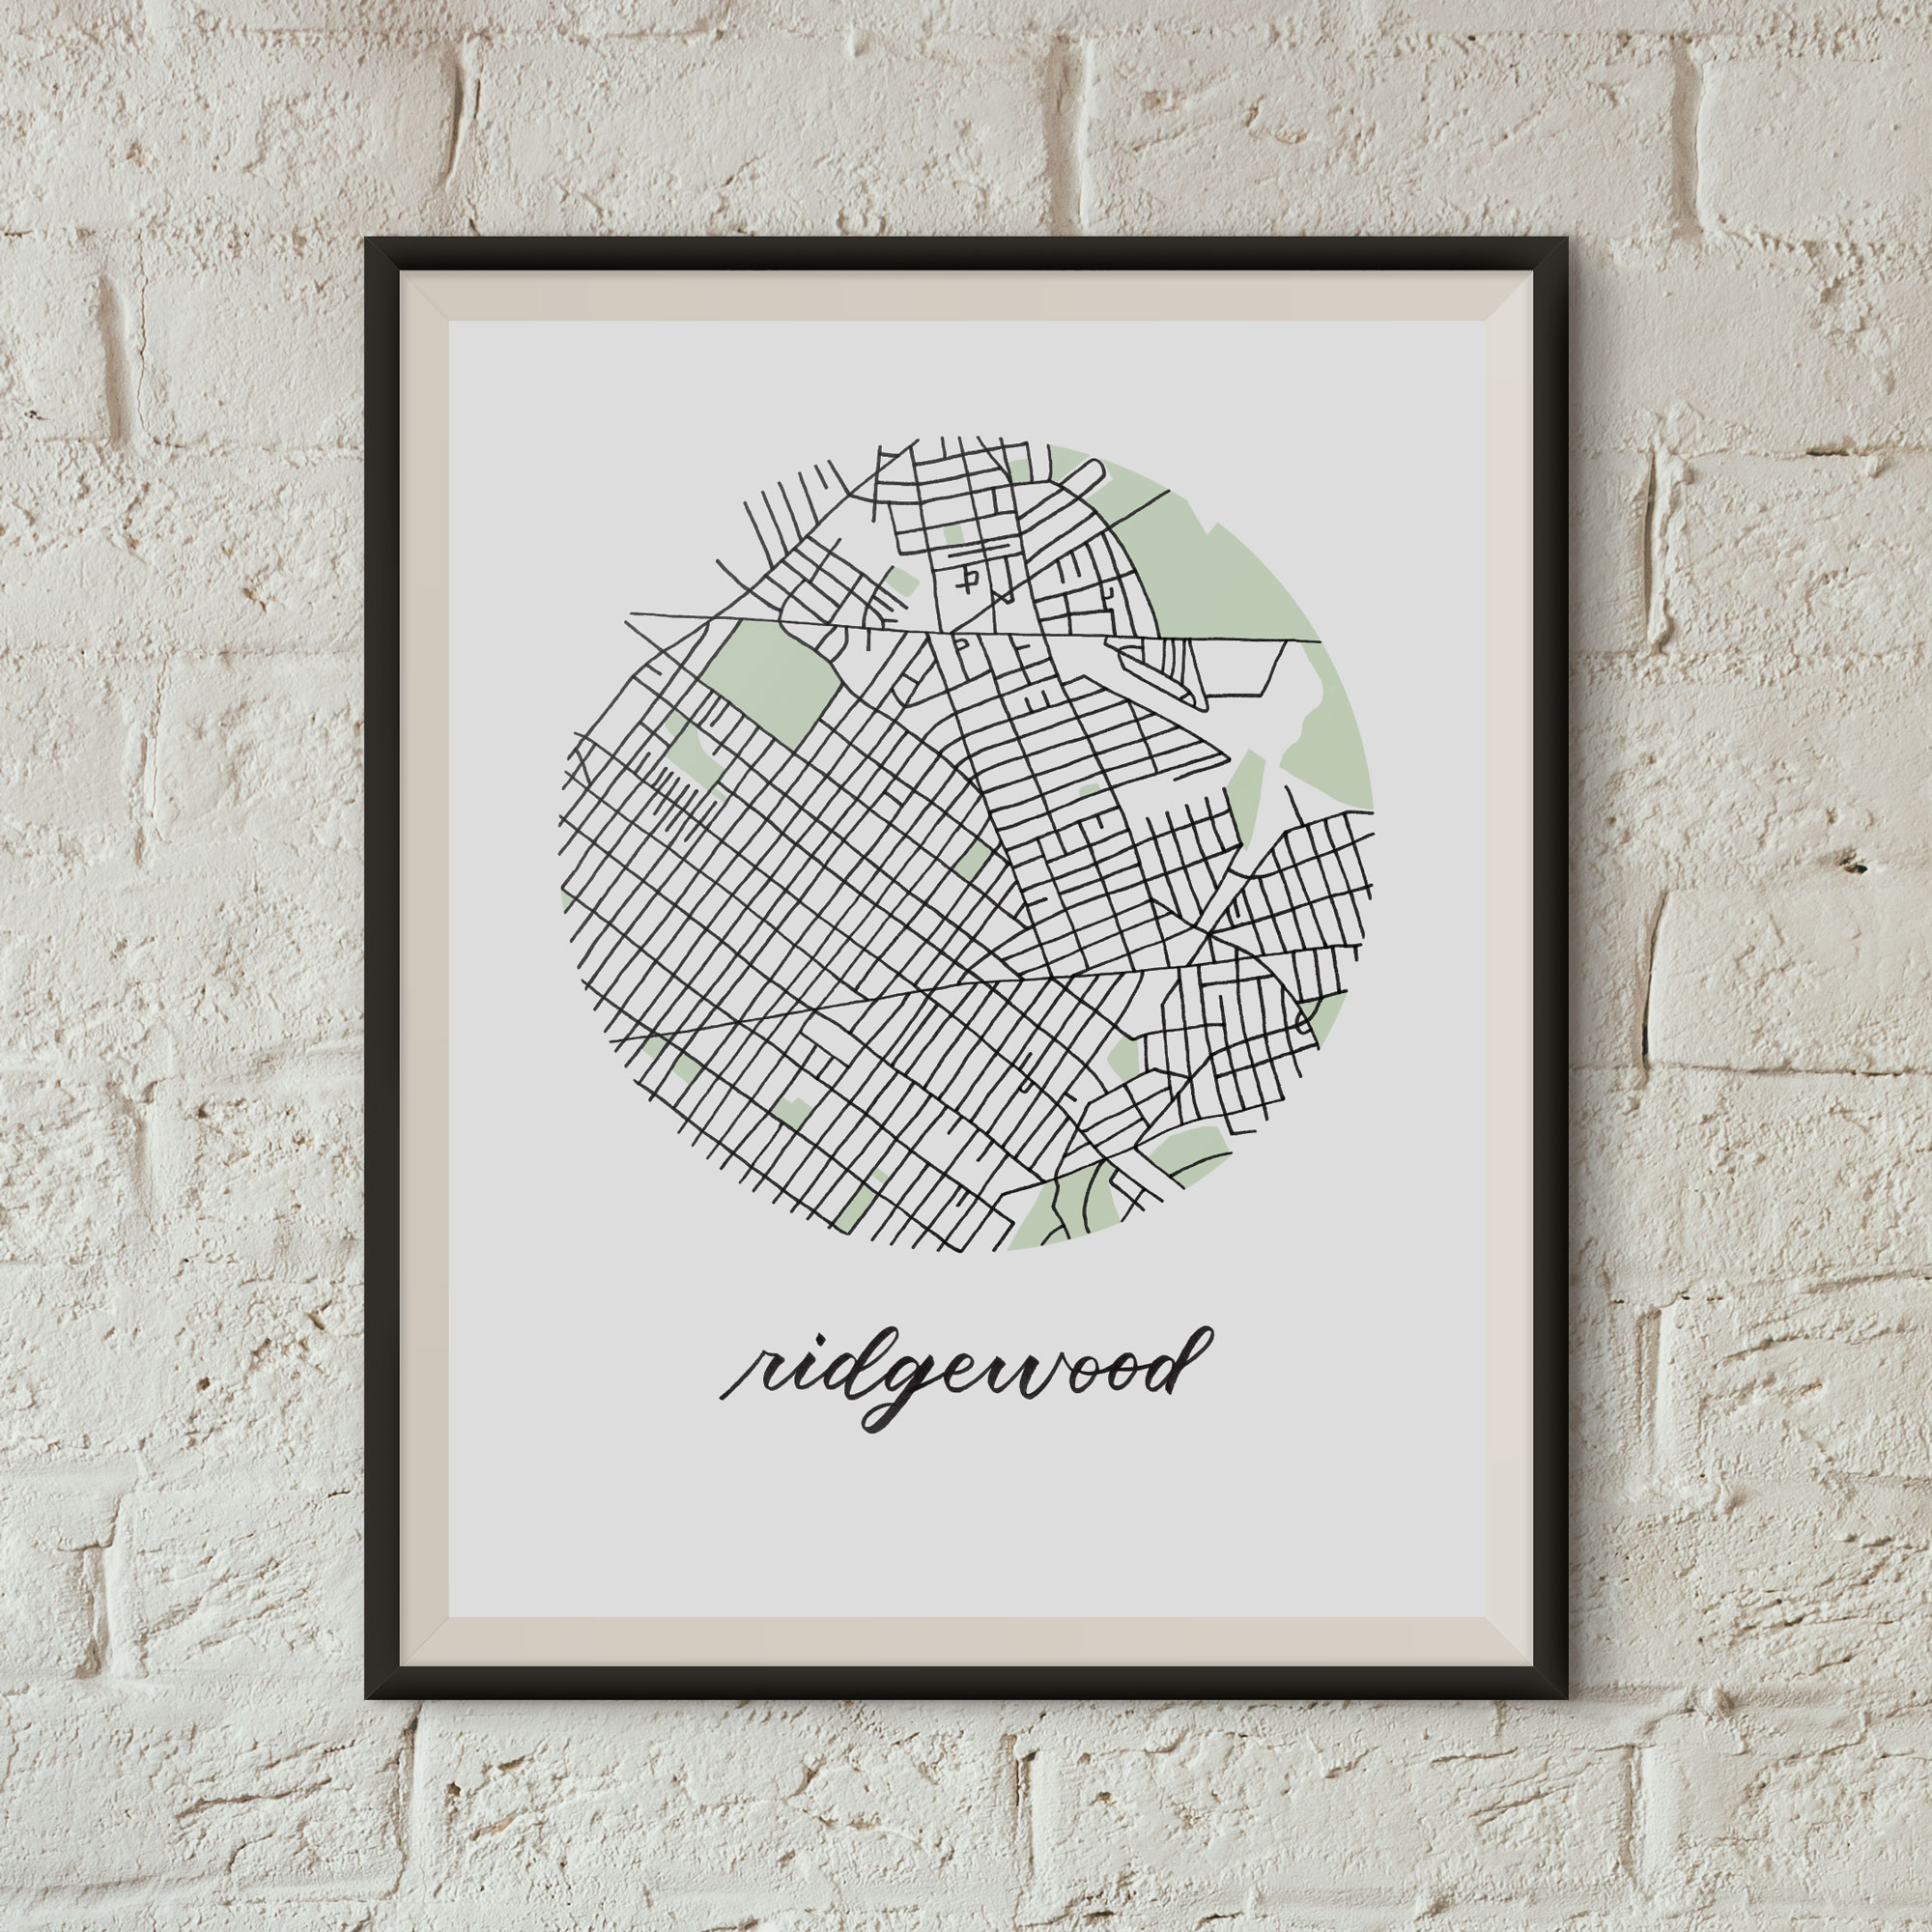 Ridgewood, Queens Map Print framed on a white brick wall